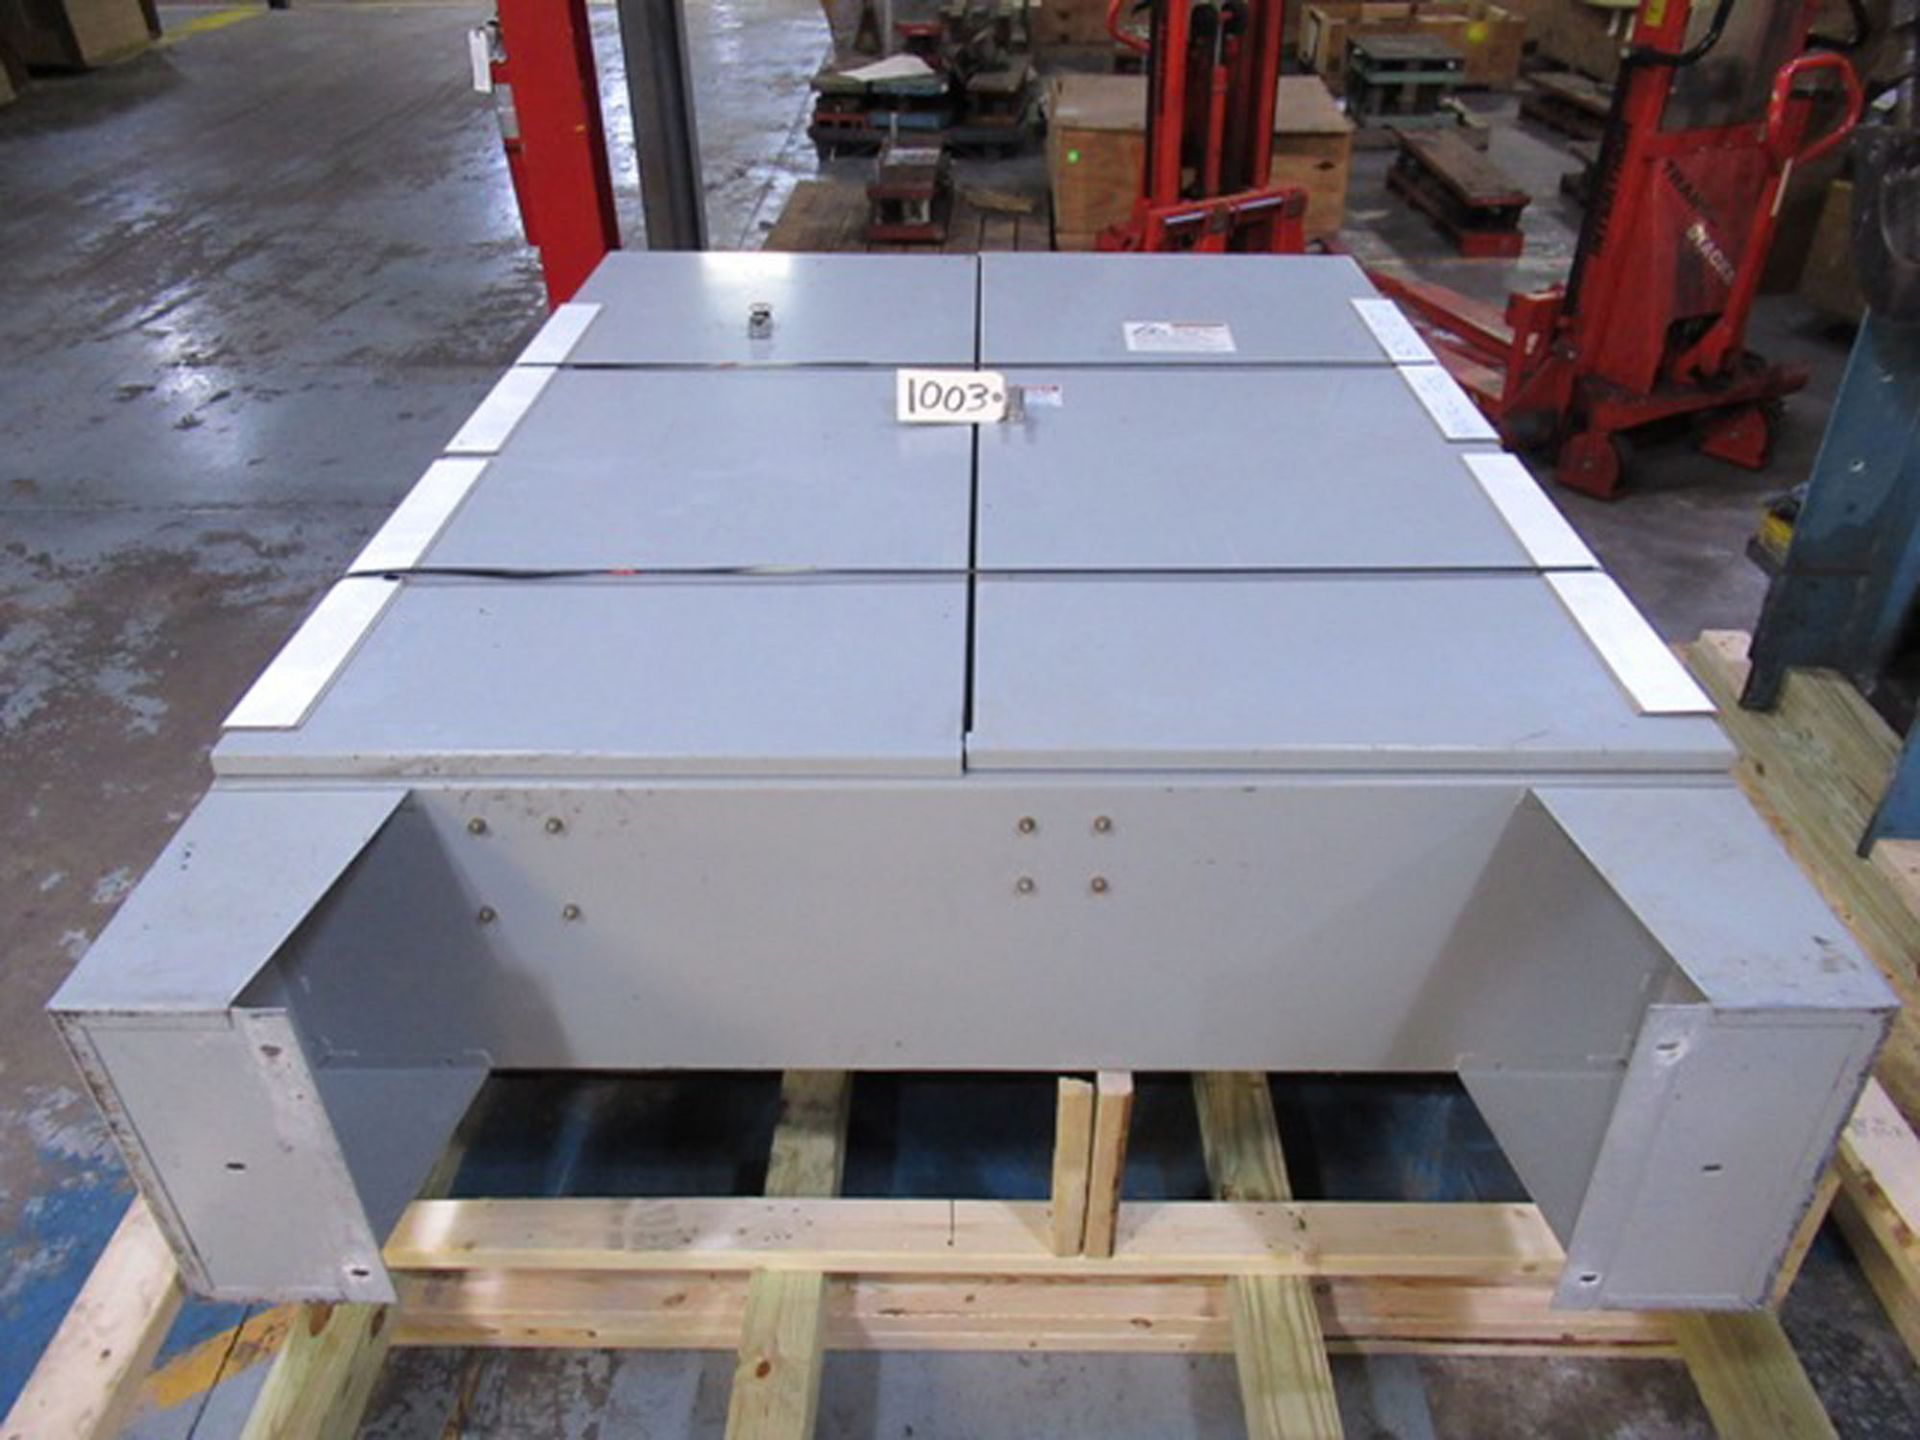 CONTROL/POWER BOX FOR (2) DAVIS STANDARD PLASTIC EXTRUDERS, S/N: N/A (CI) [1003] (LOCATED IN NORTH - Image 3 of 4